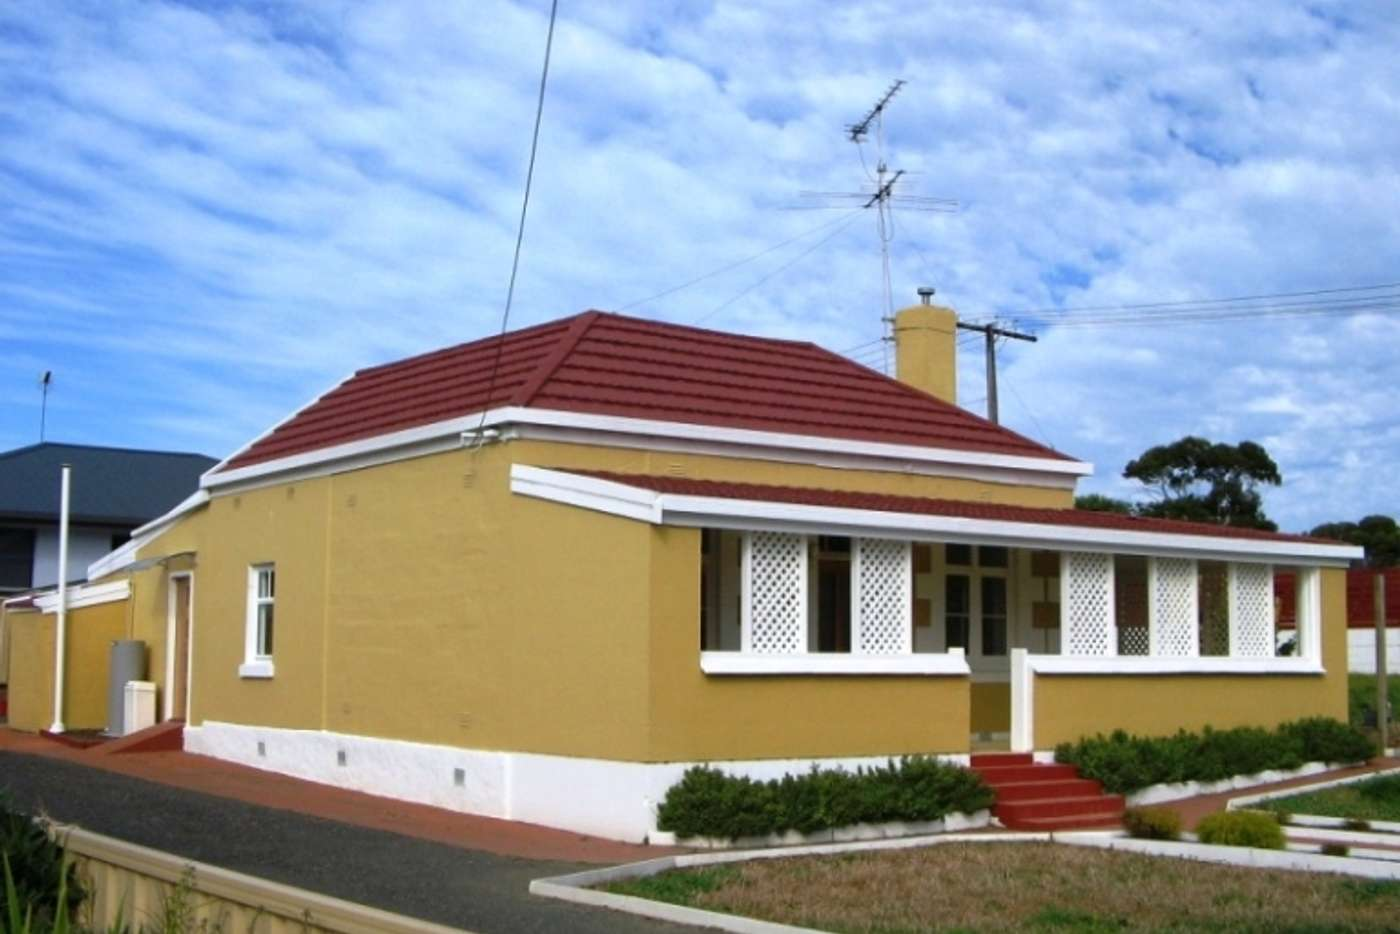 Main view of Homely house listing, 10 Sutton Avenue, Mount Gambier SA 5290